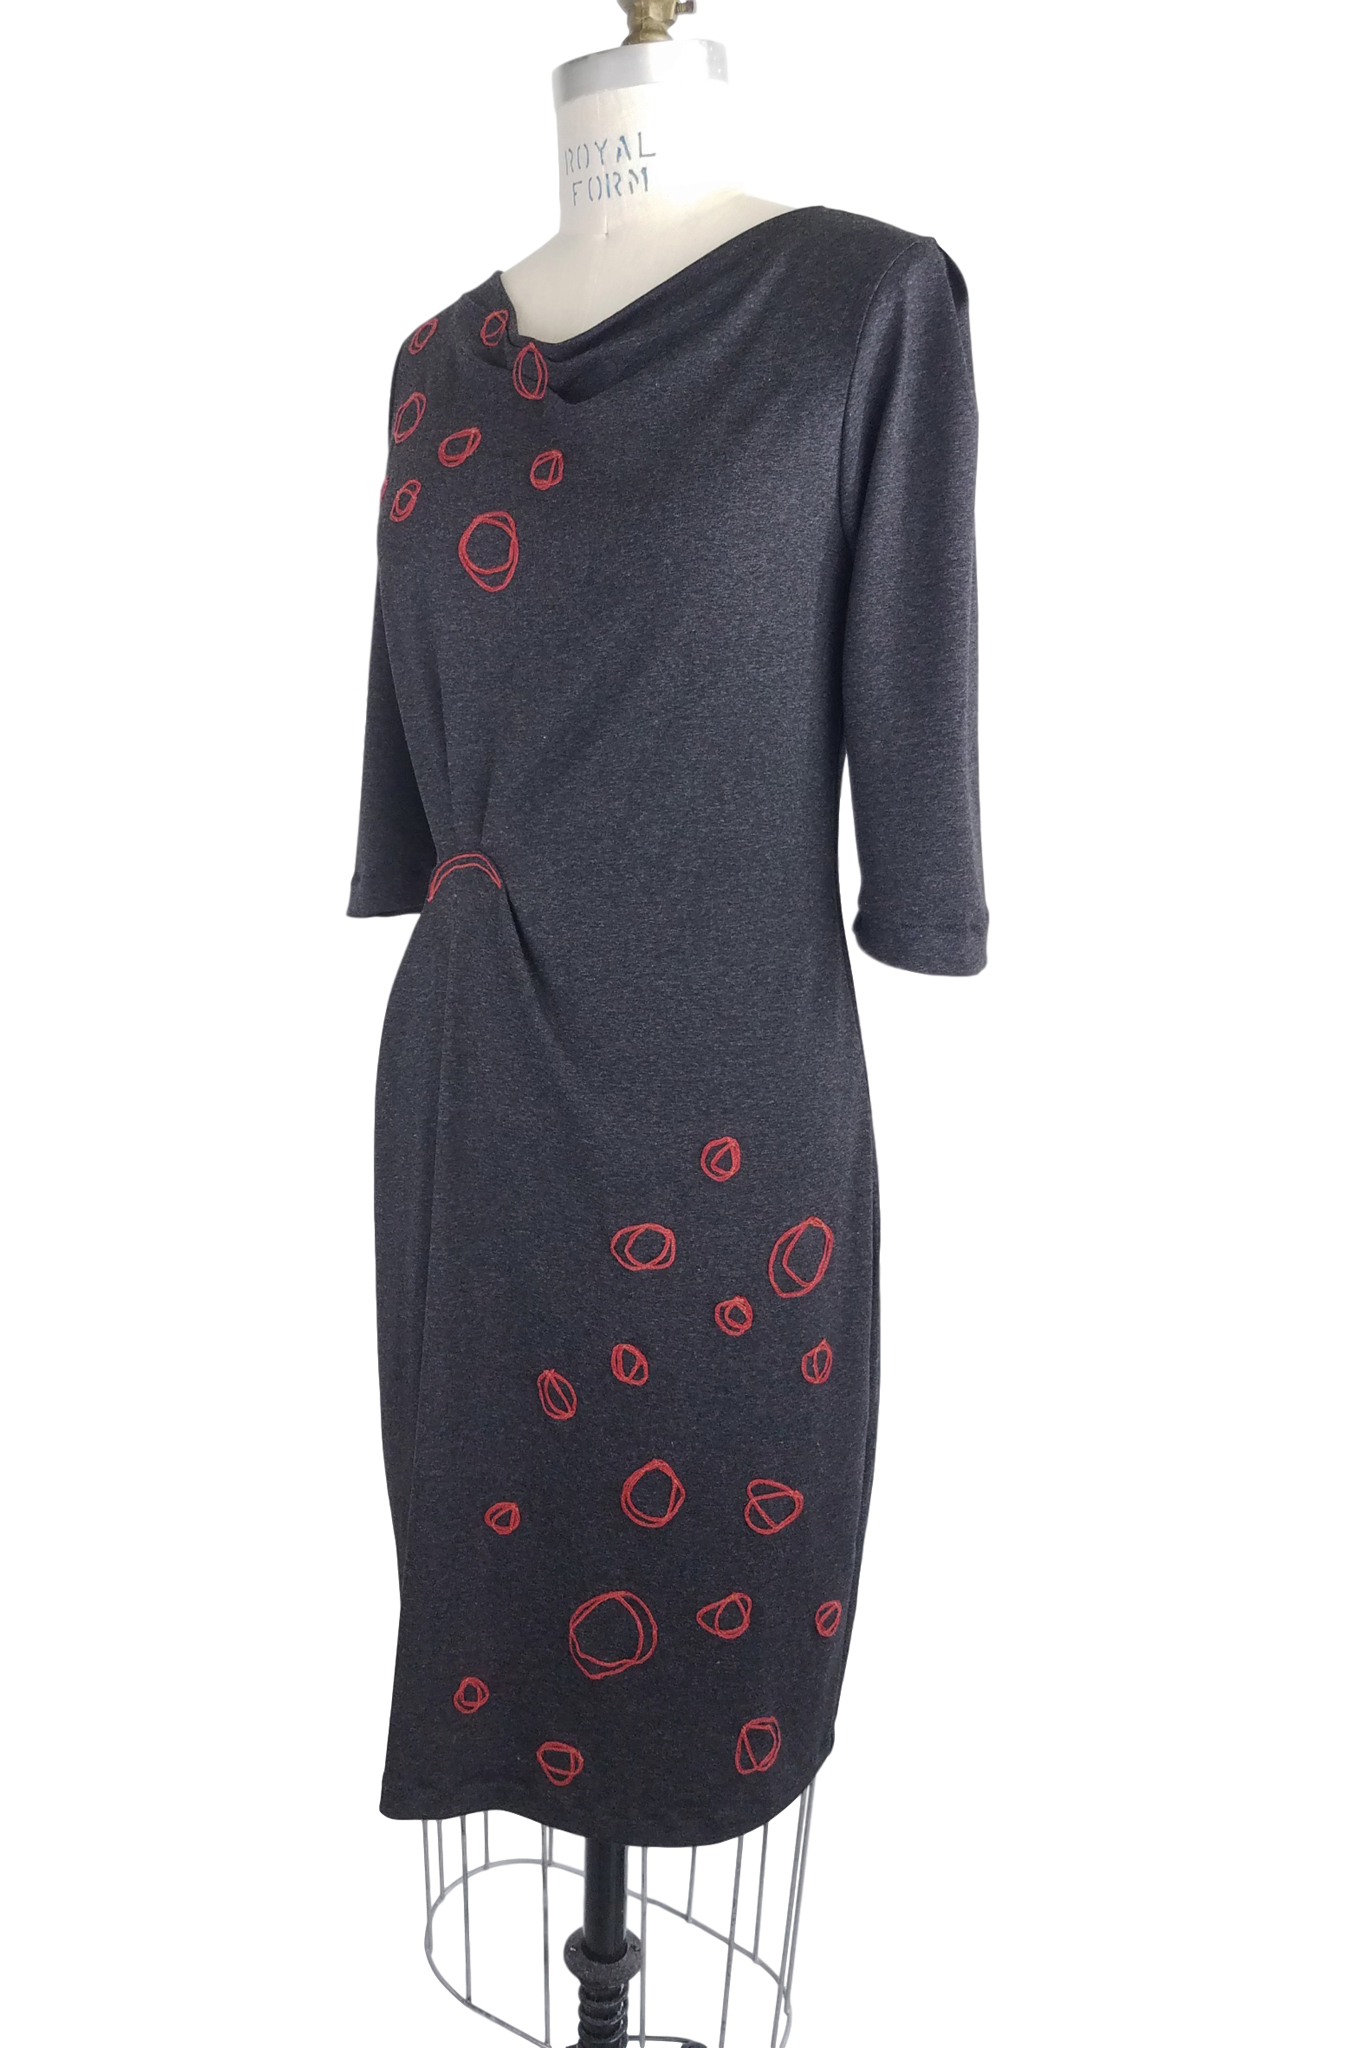 Double Circle Dress in Charcoal/Firebrick Red